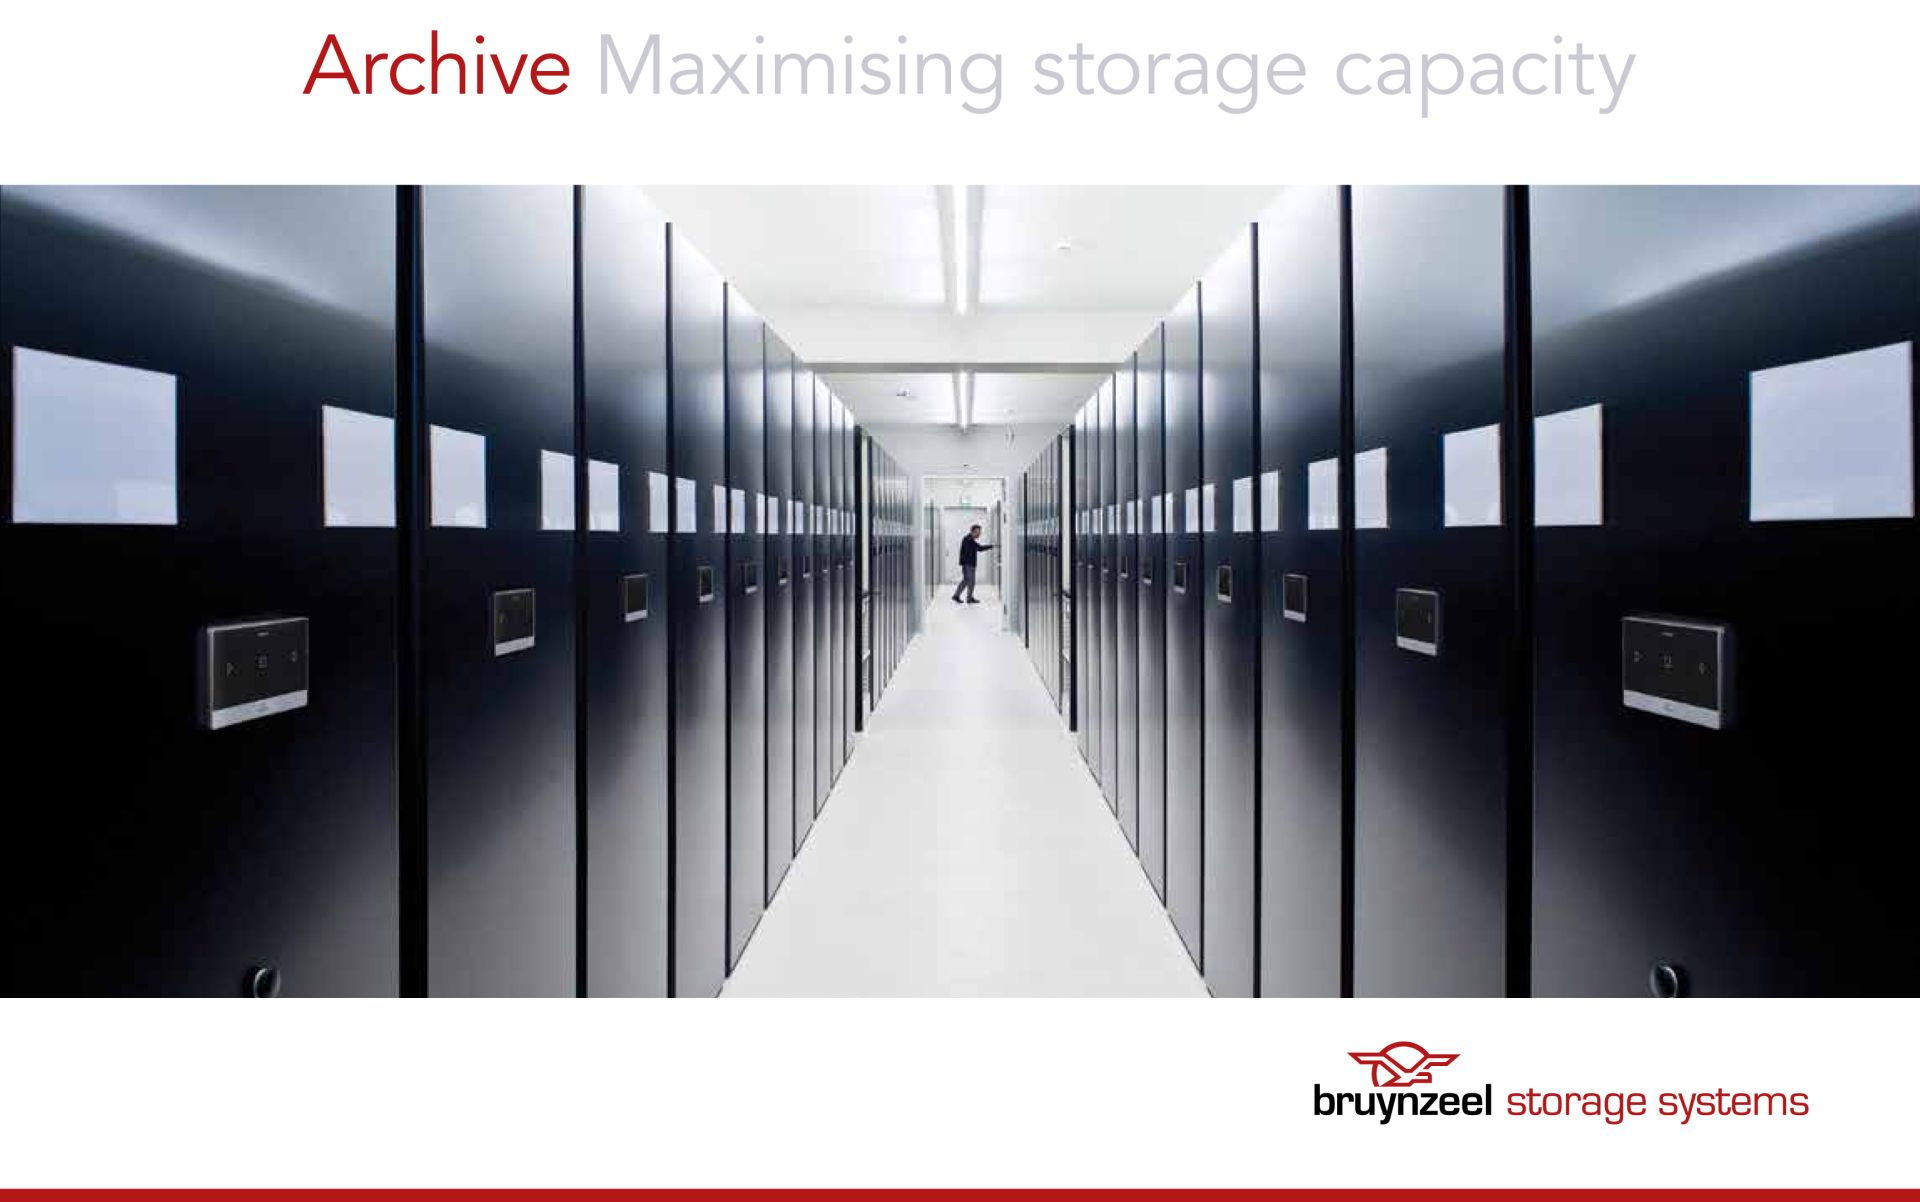 Bruynzeel Storage Systems.Bruynzeel Storage Systems